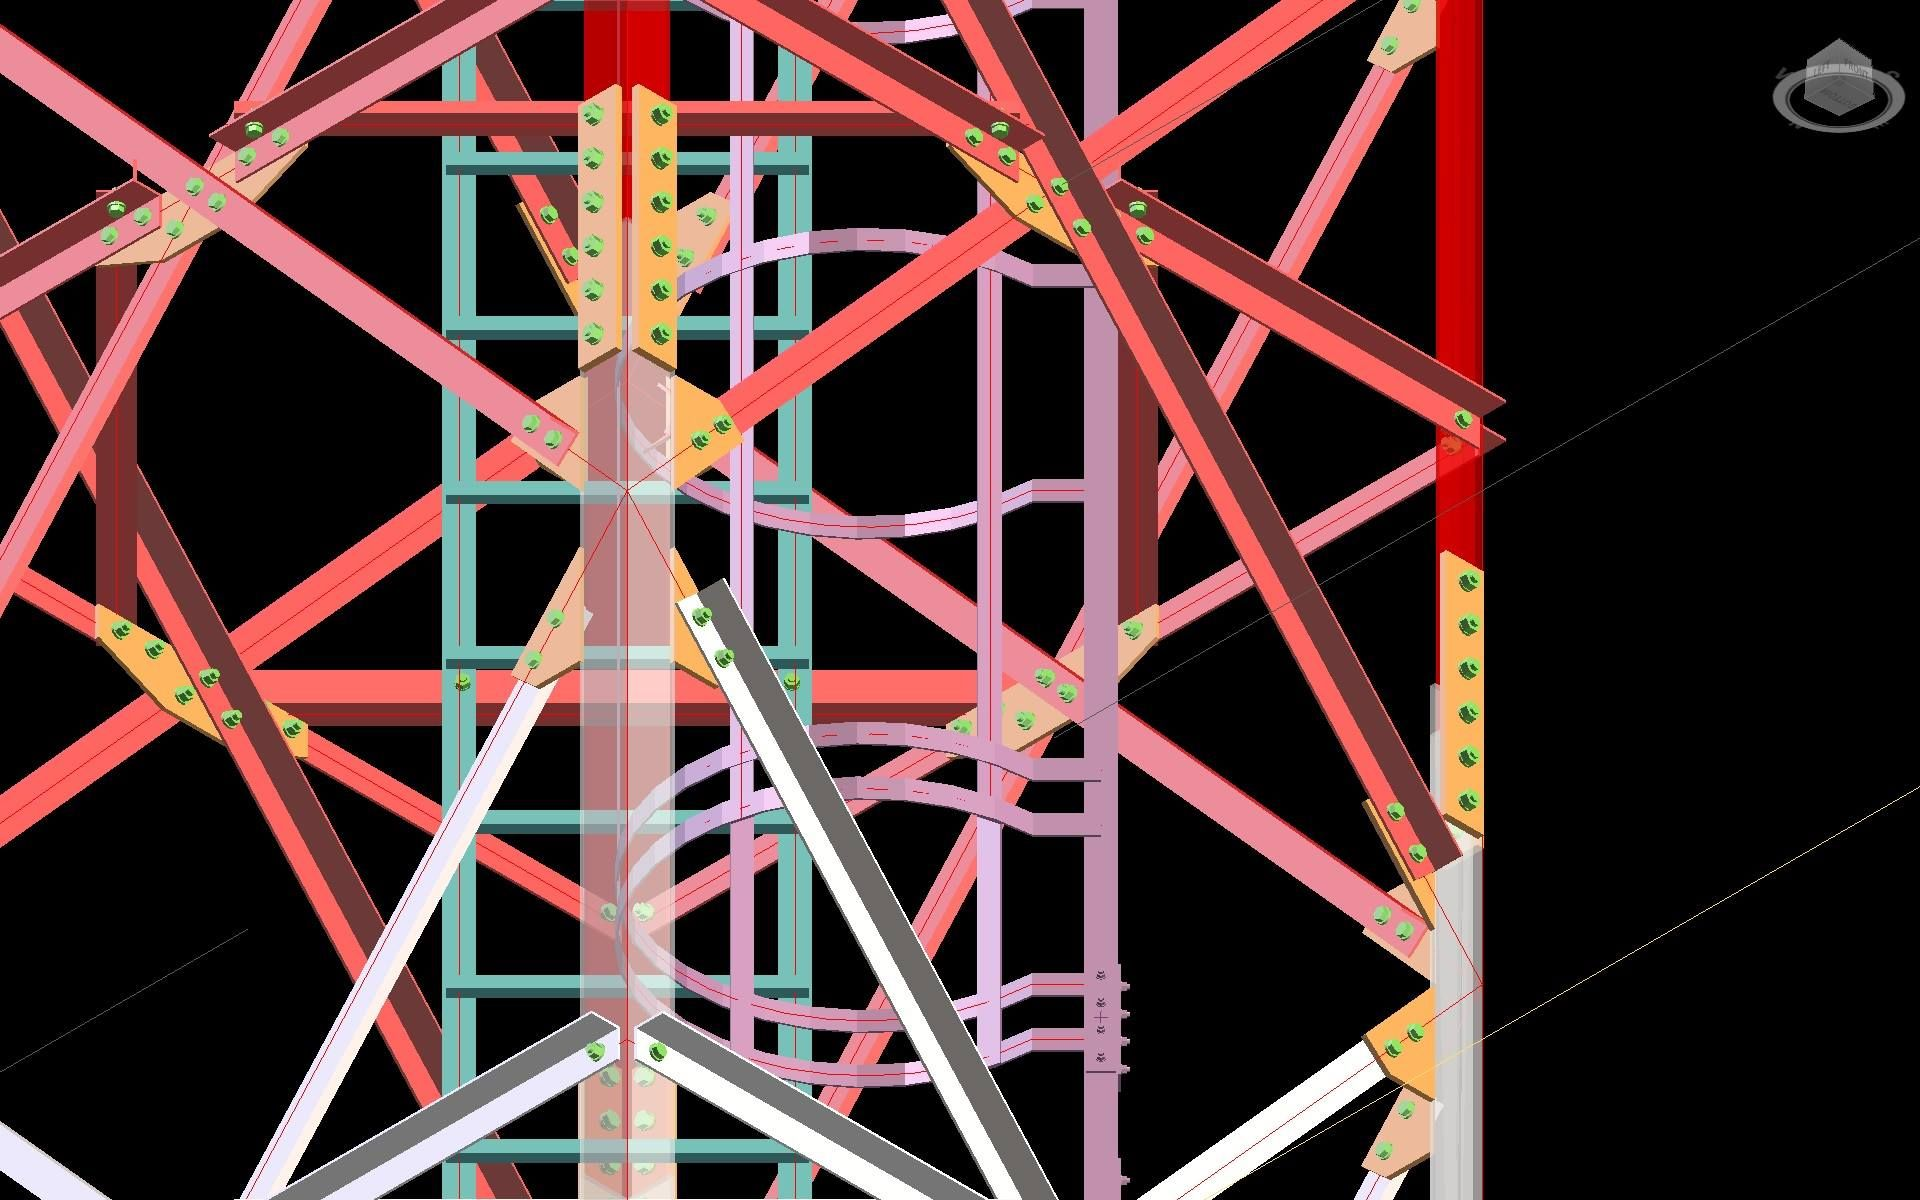 Lattice Tower - Translink Telecomunication Towers - Joints